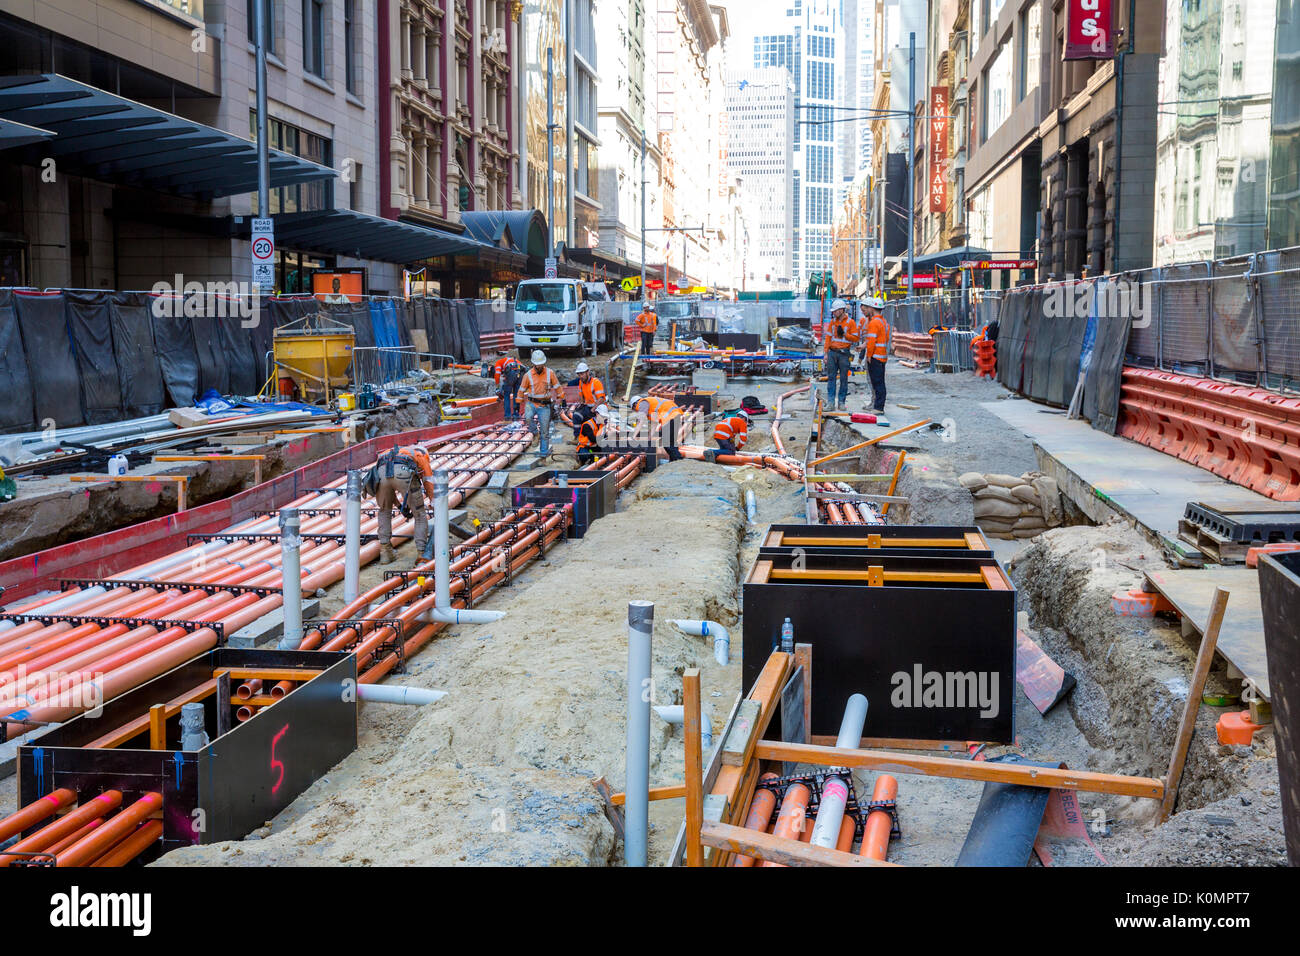 Civil engineering and construction works to build the Sydney CBD light rail project underway in George street Sydney city centre,Australia - Stock Image